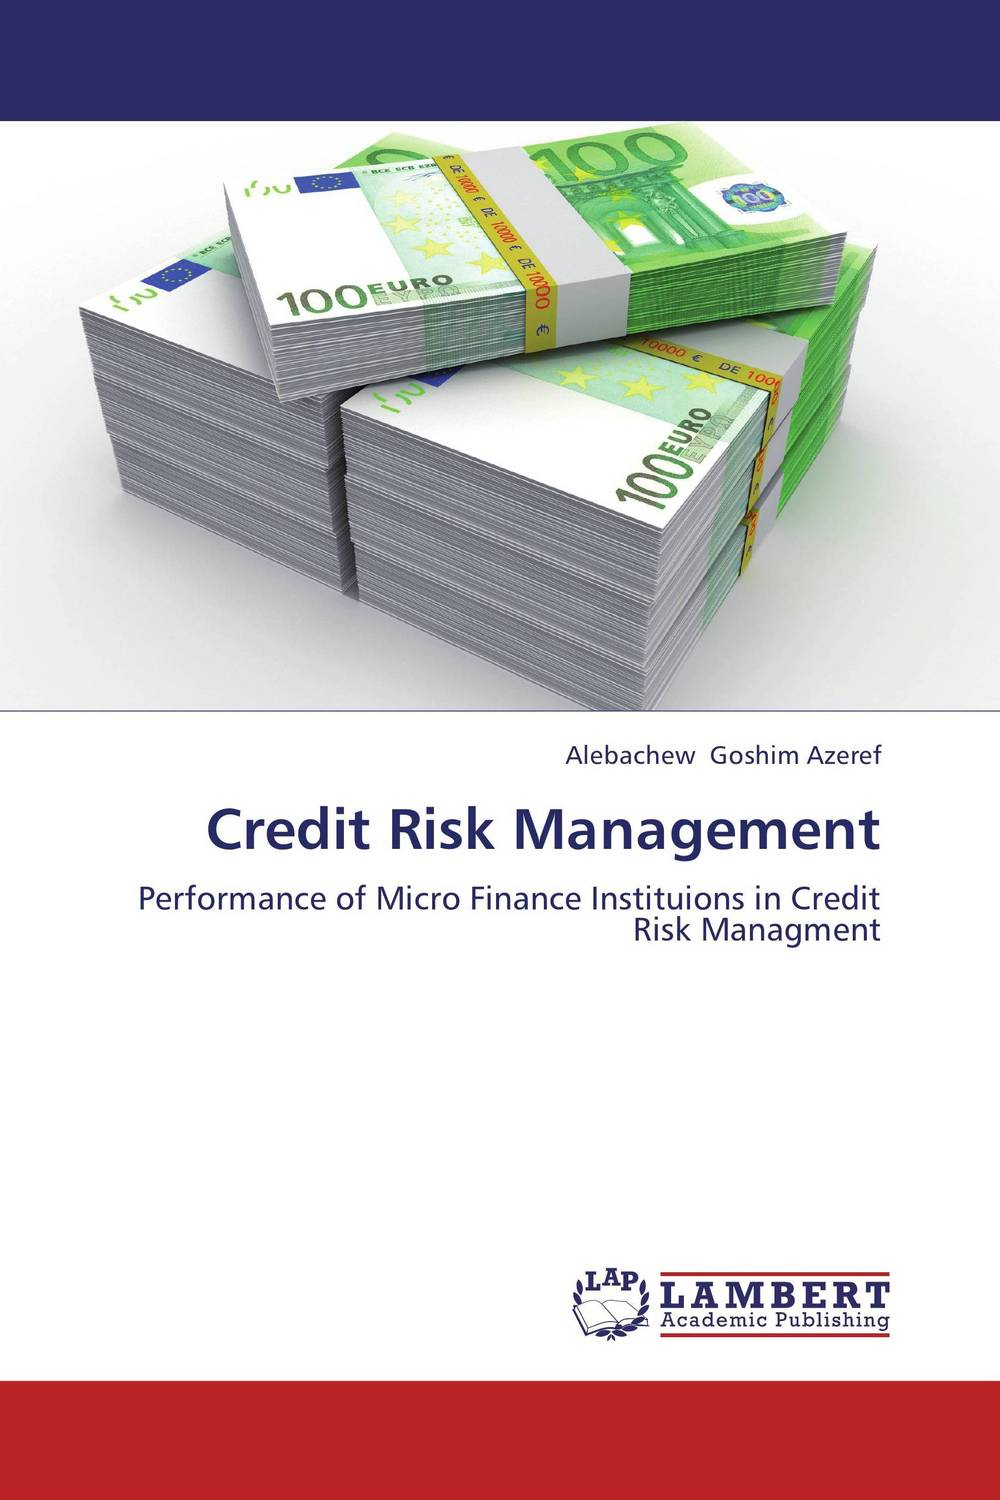 Credit Risk Management kenji imai advanced financial risk management tools and techniques for integrated credit risk and interest rate risk management